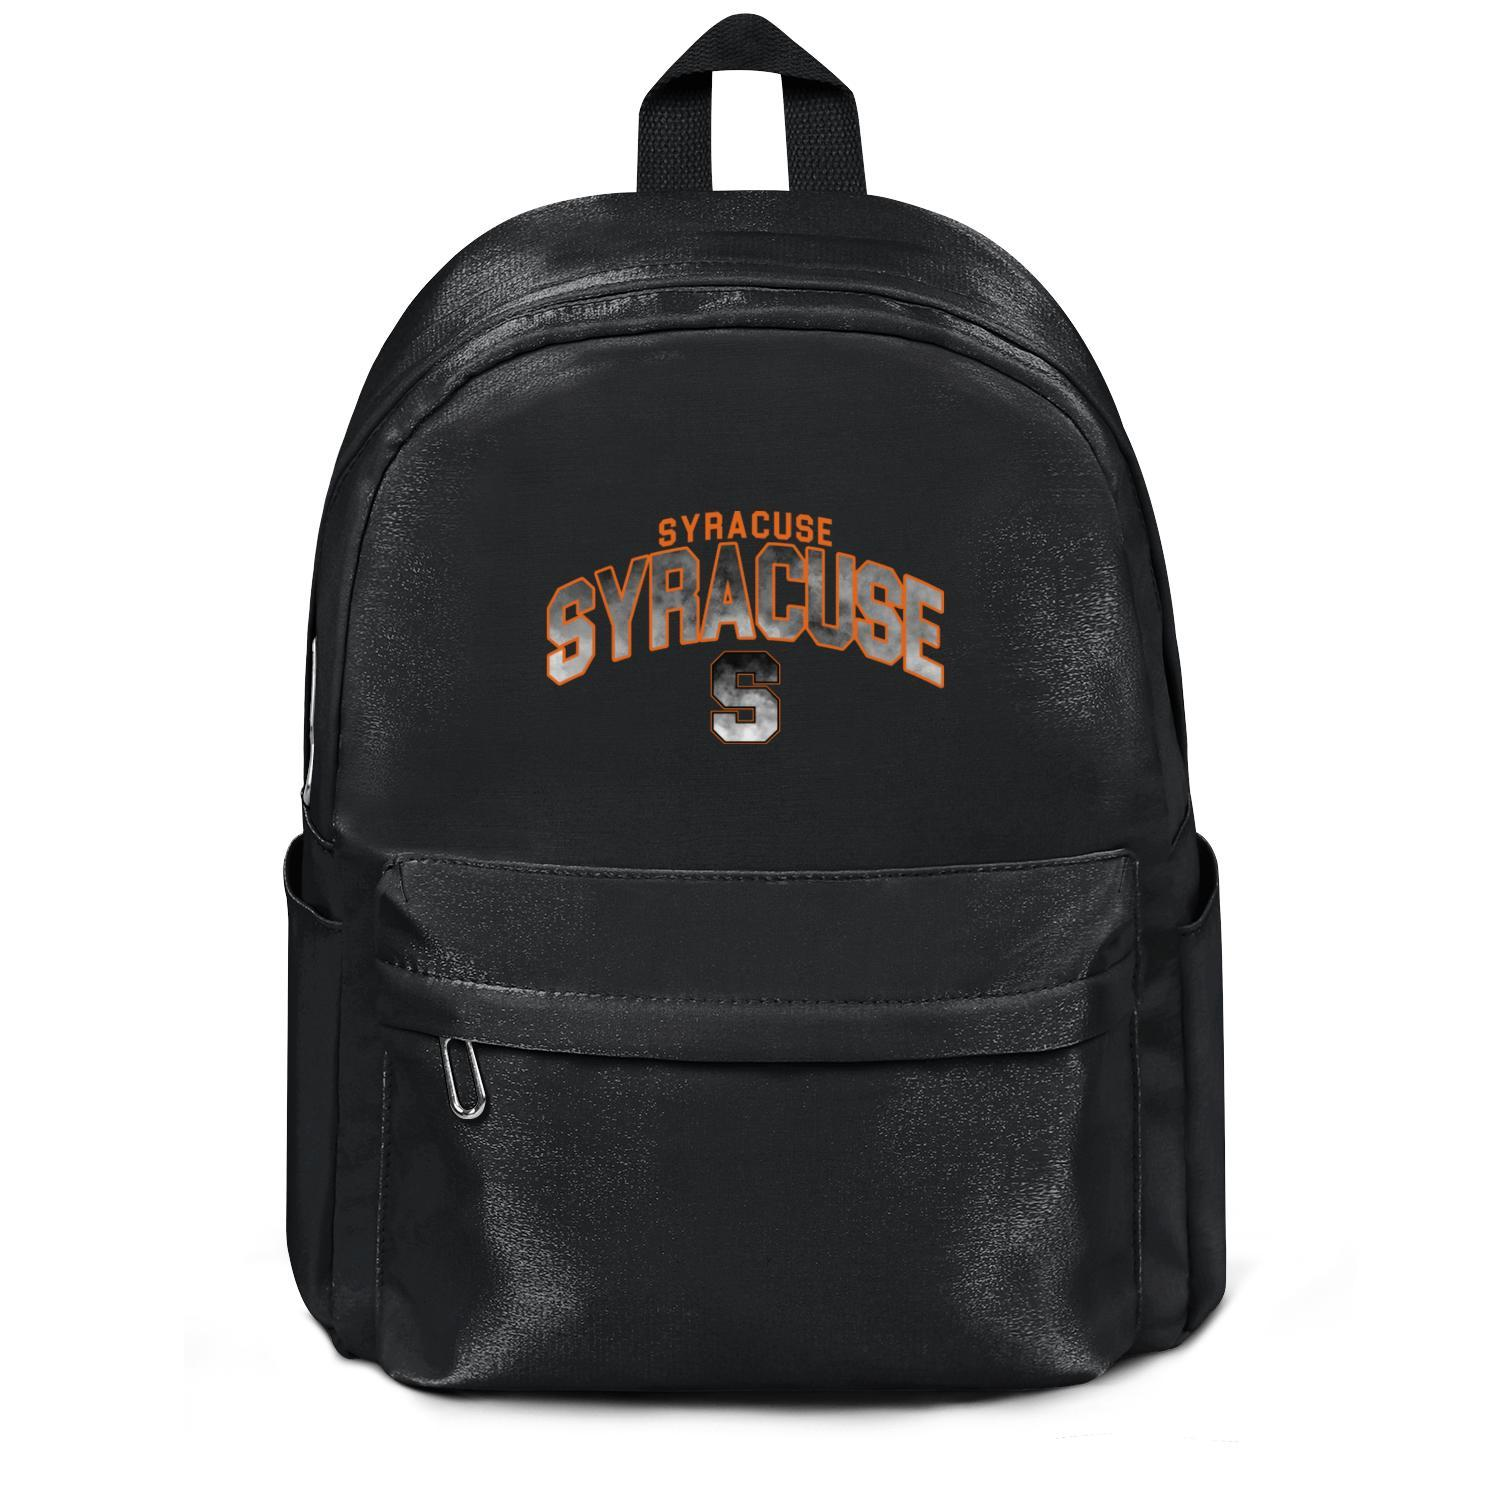 Package,backpack Syracuse Orange Basketball Core Smoke logo black cool Casualpackage convenient sports athleticbackpack